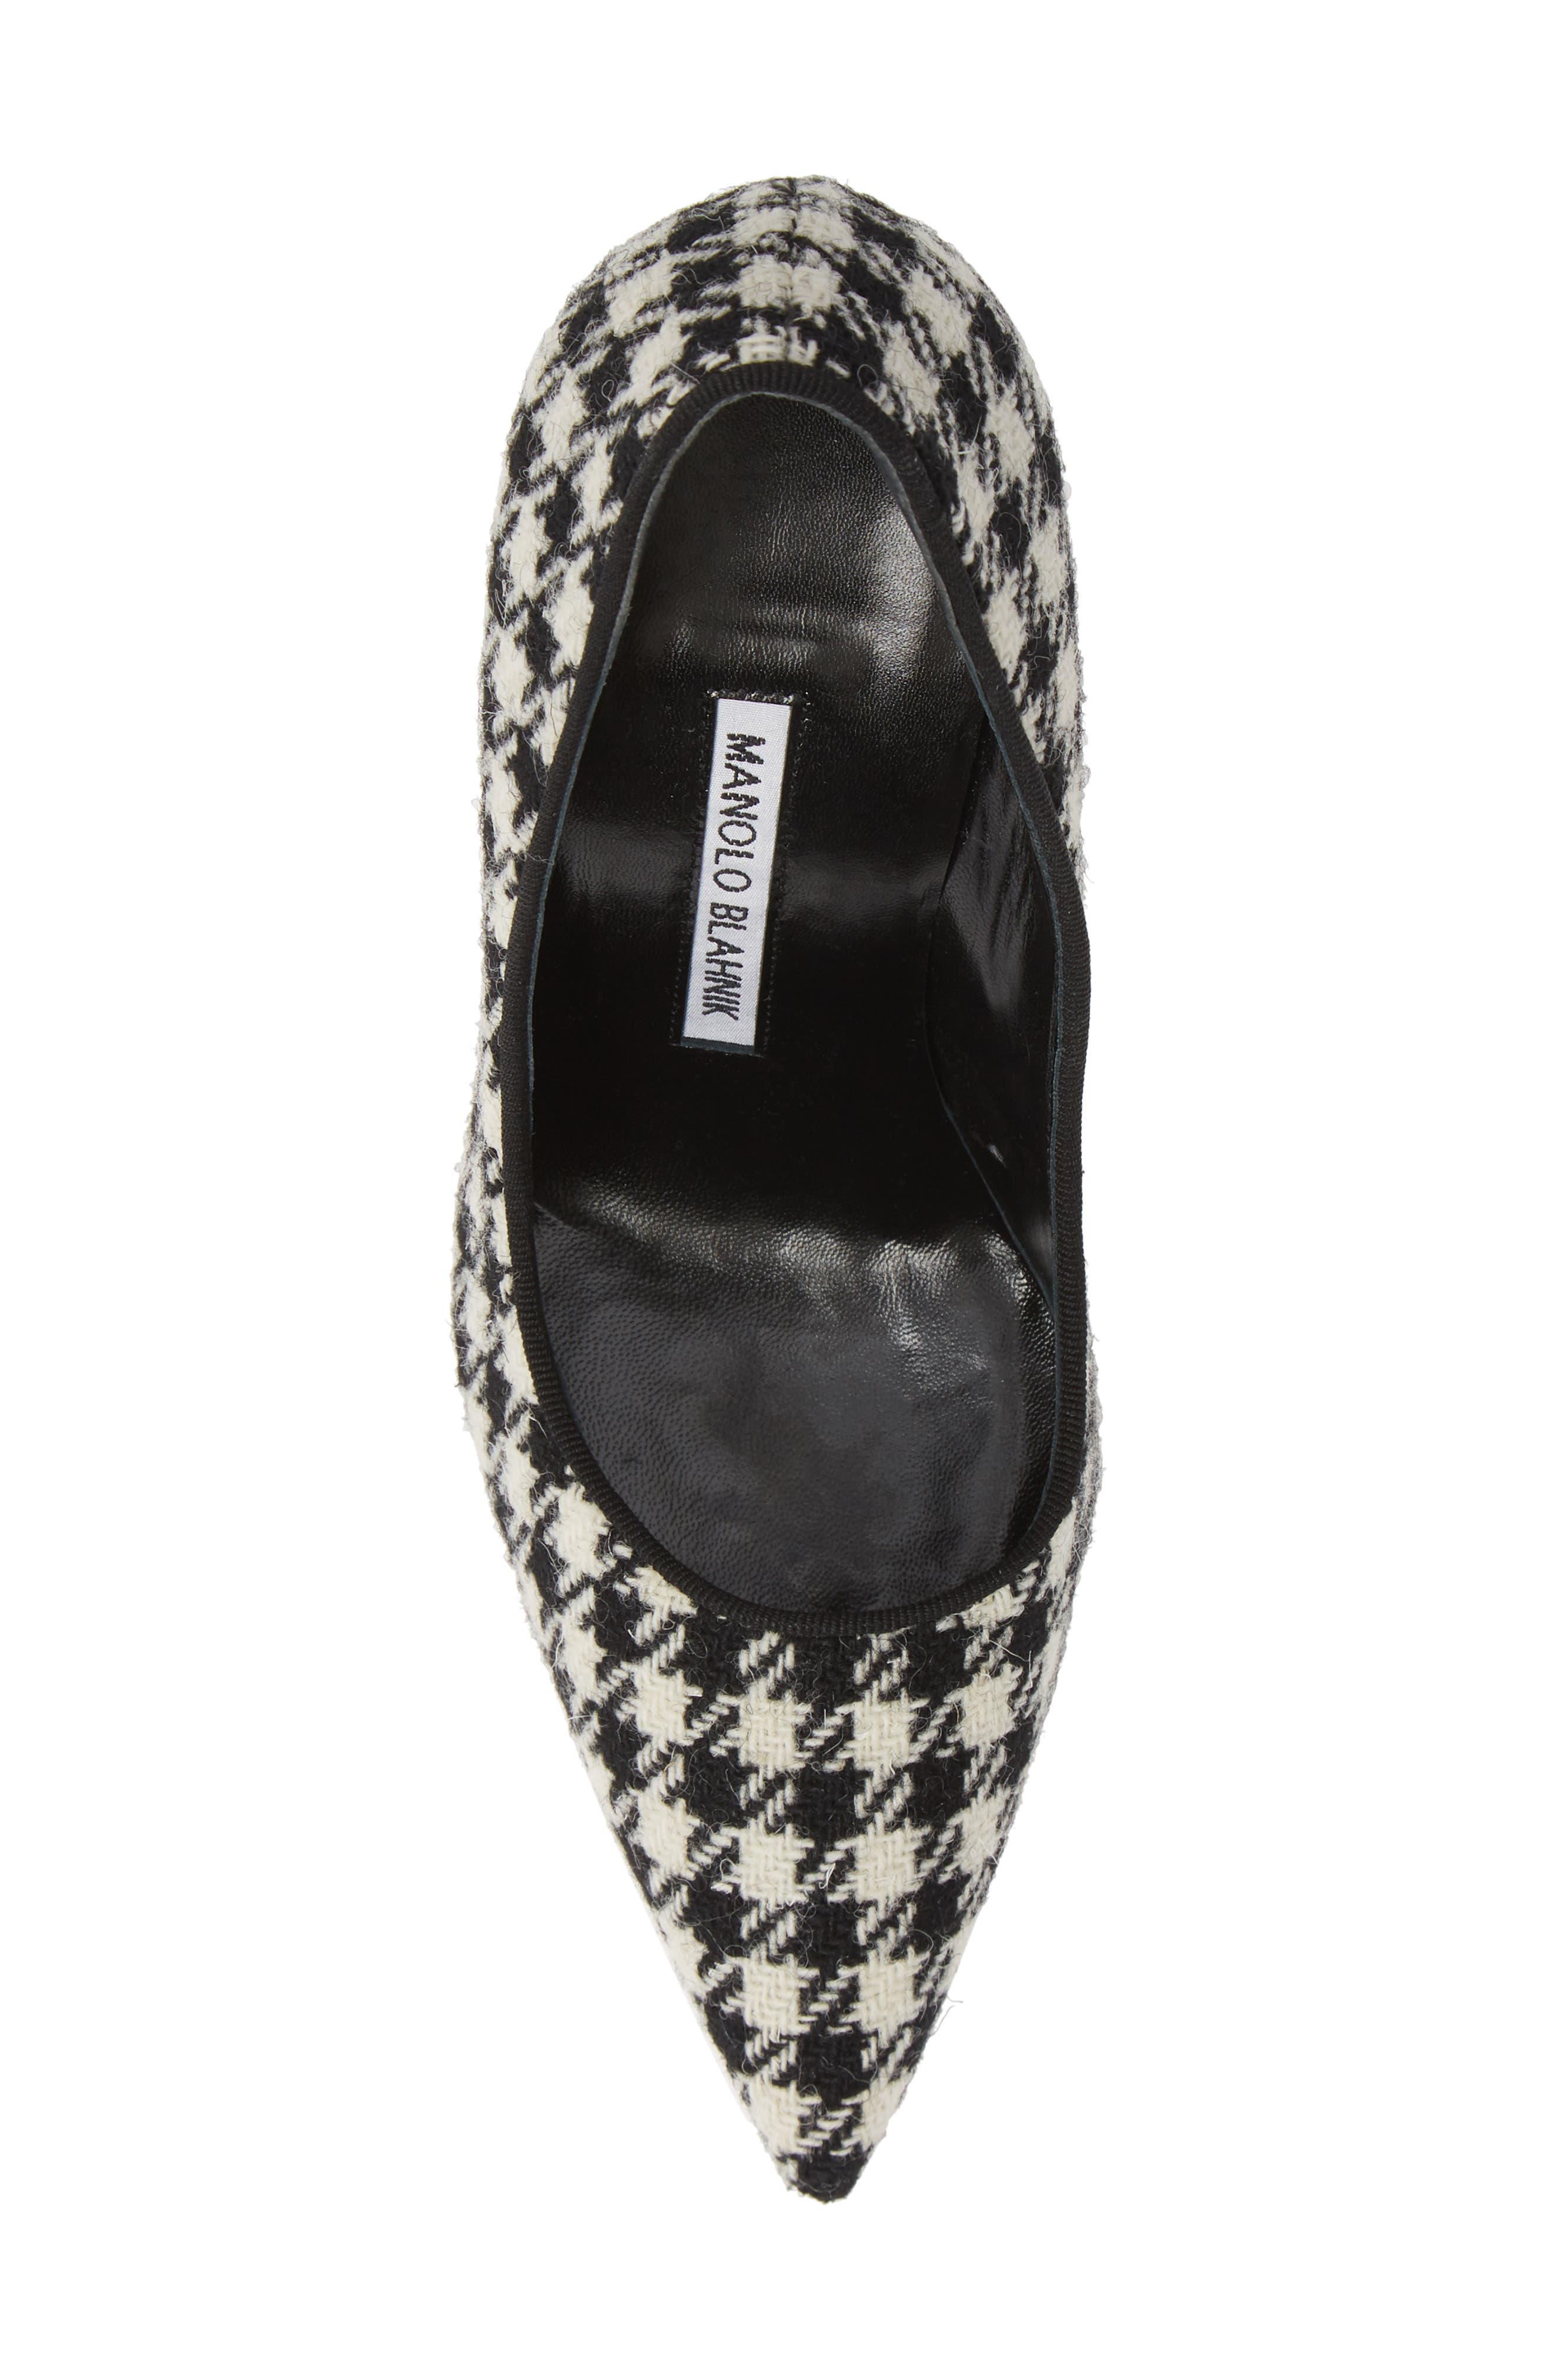 BB Pointy Toe Pump,                             Alternate thumbnail 5, color,                             HOUNDSTOOTH